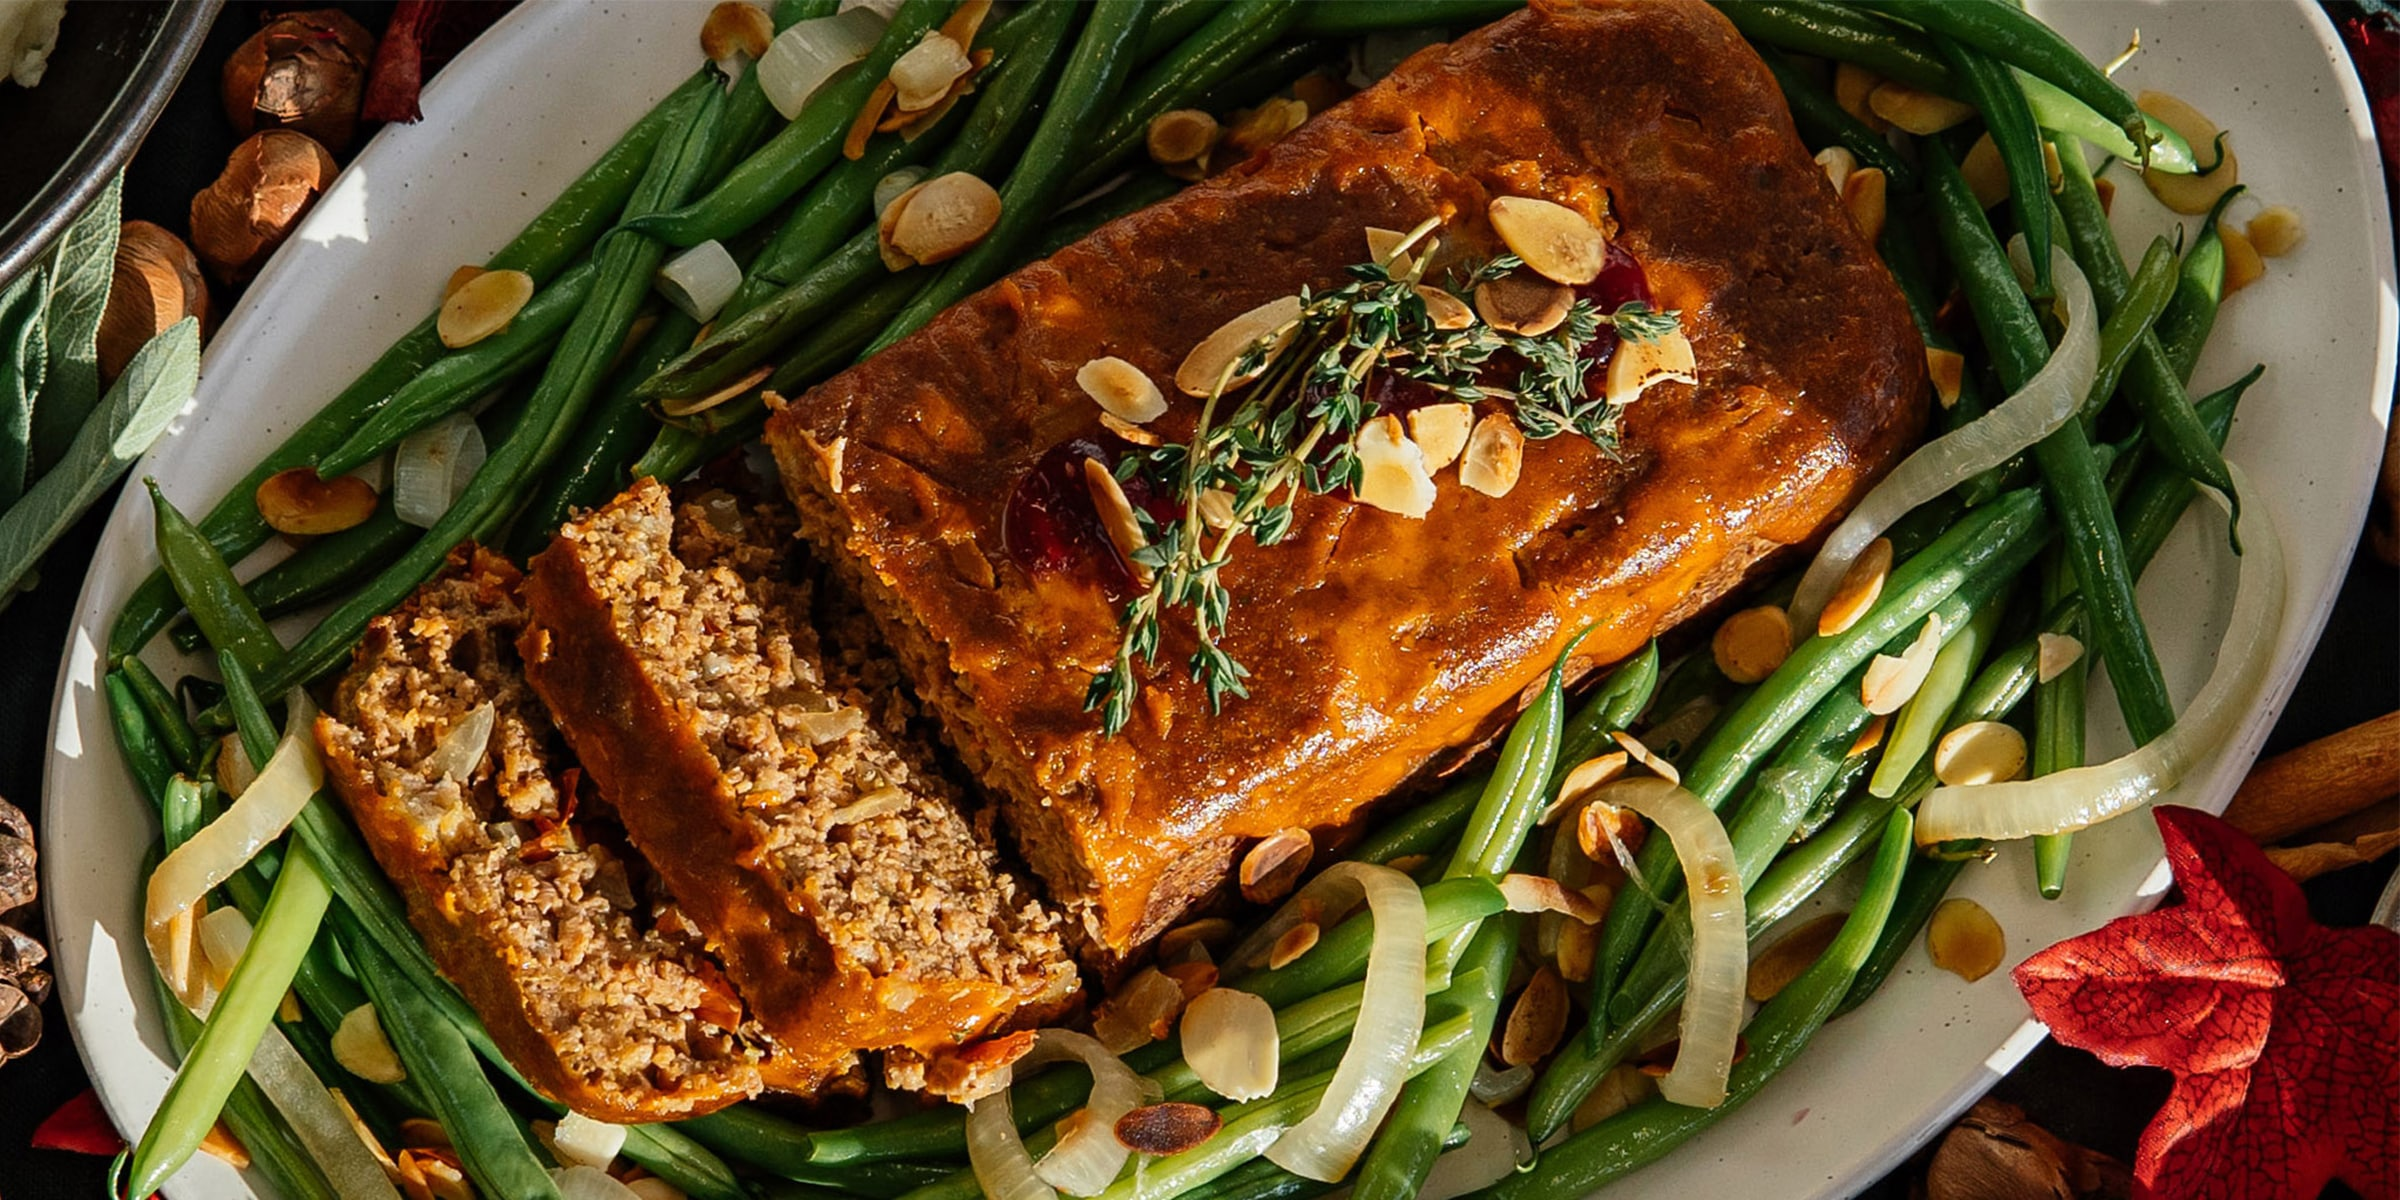 Meat-free meatloaf on a bed of green beans with almonds and onion